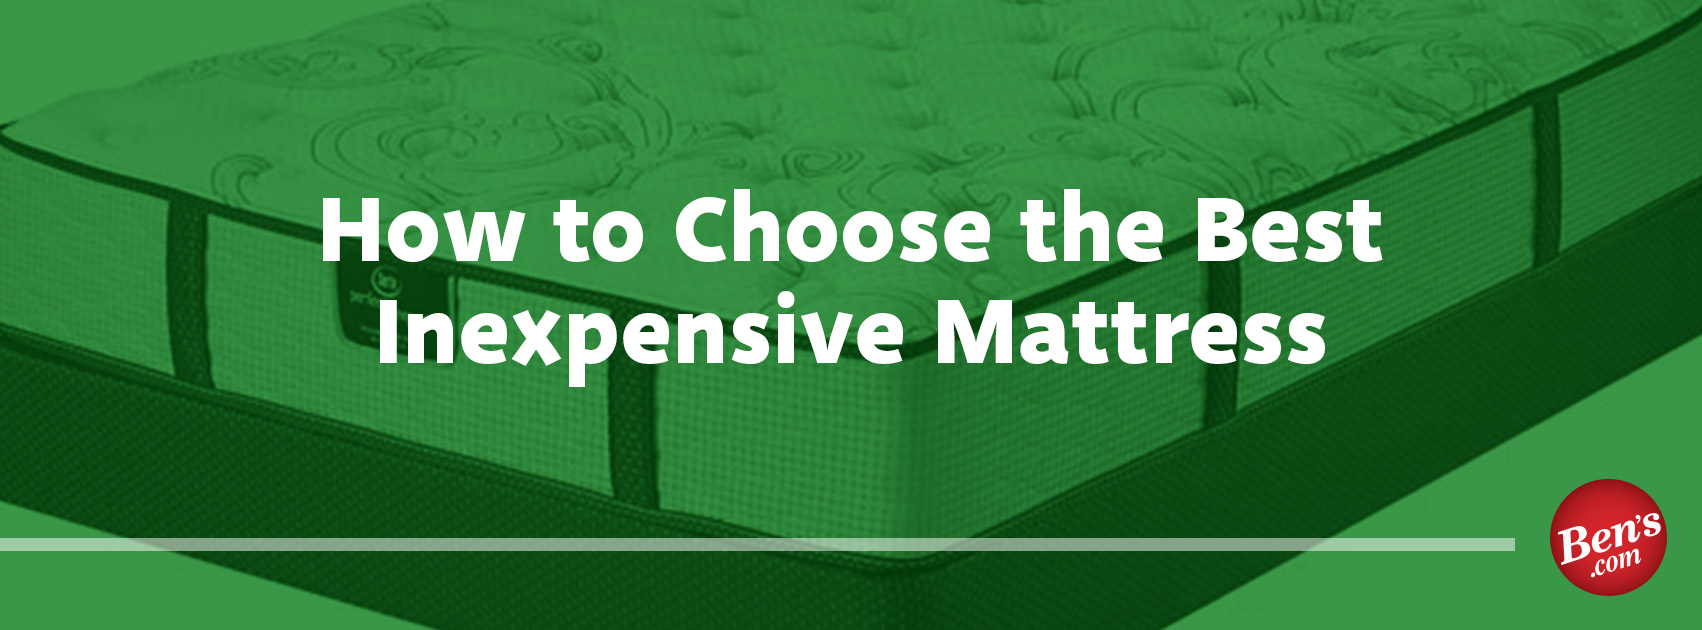 December (7) _ How to Choose the Best Inexpensive Mattress